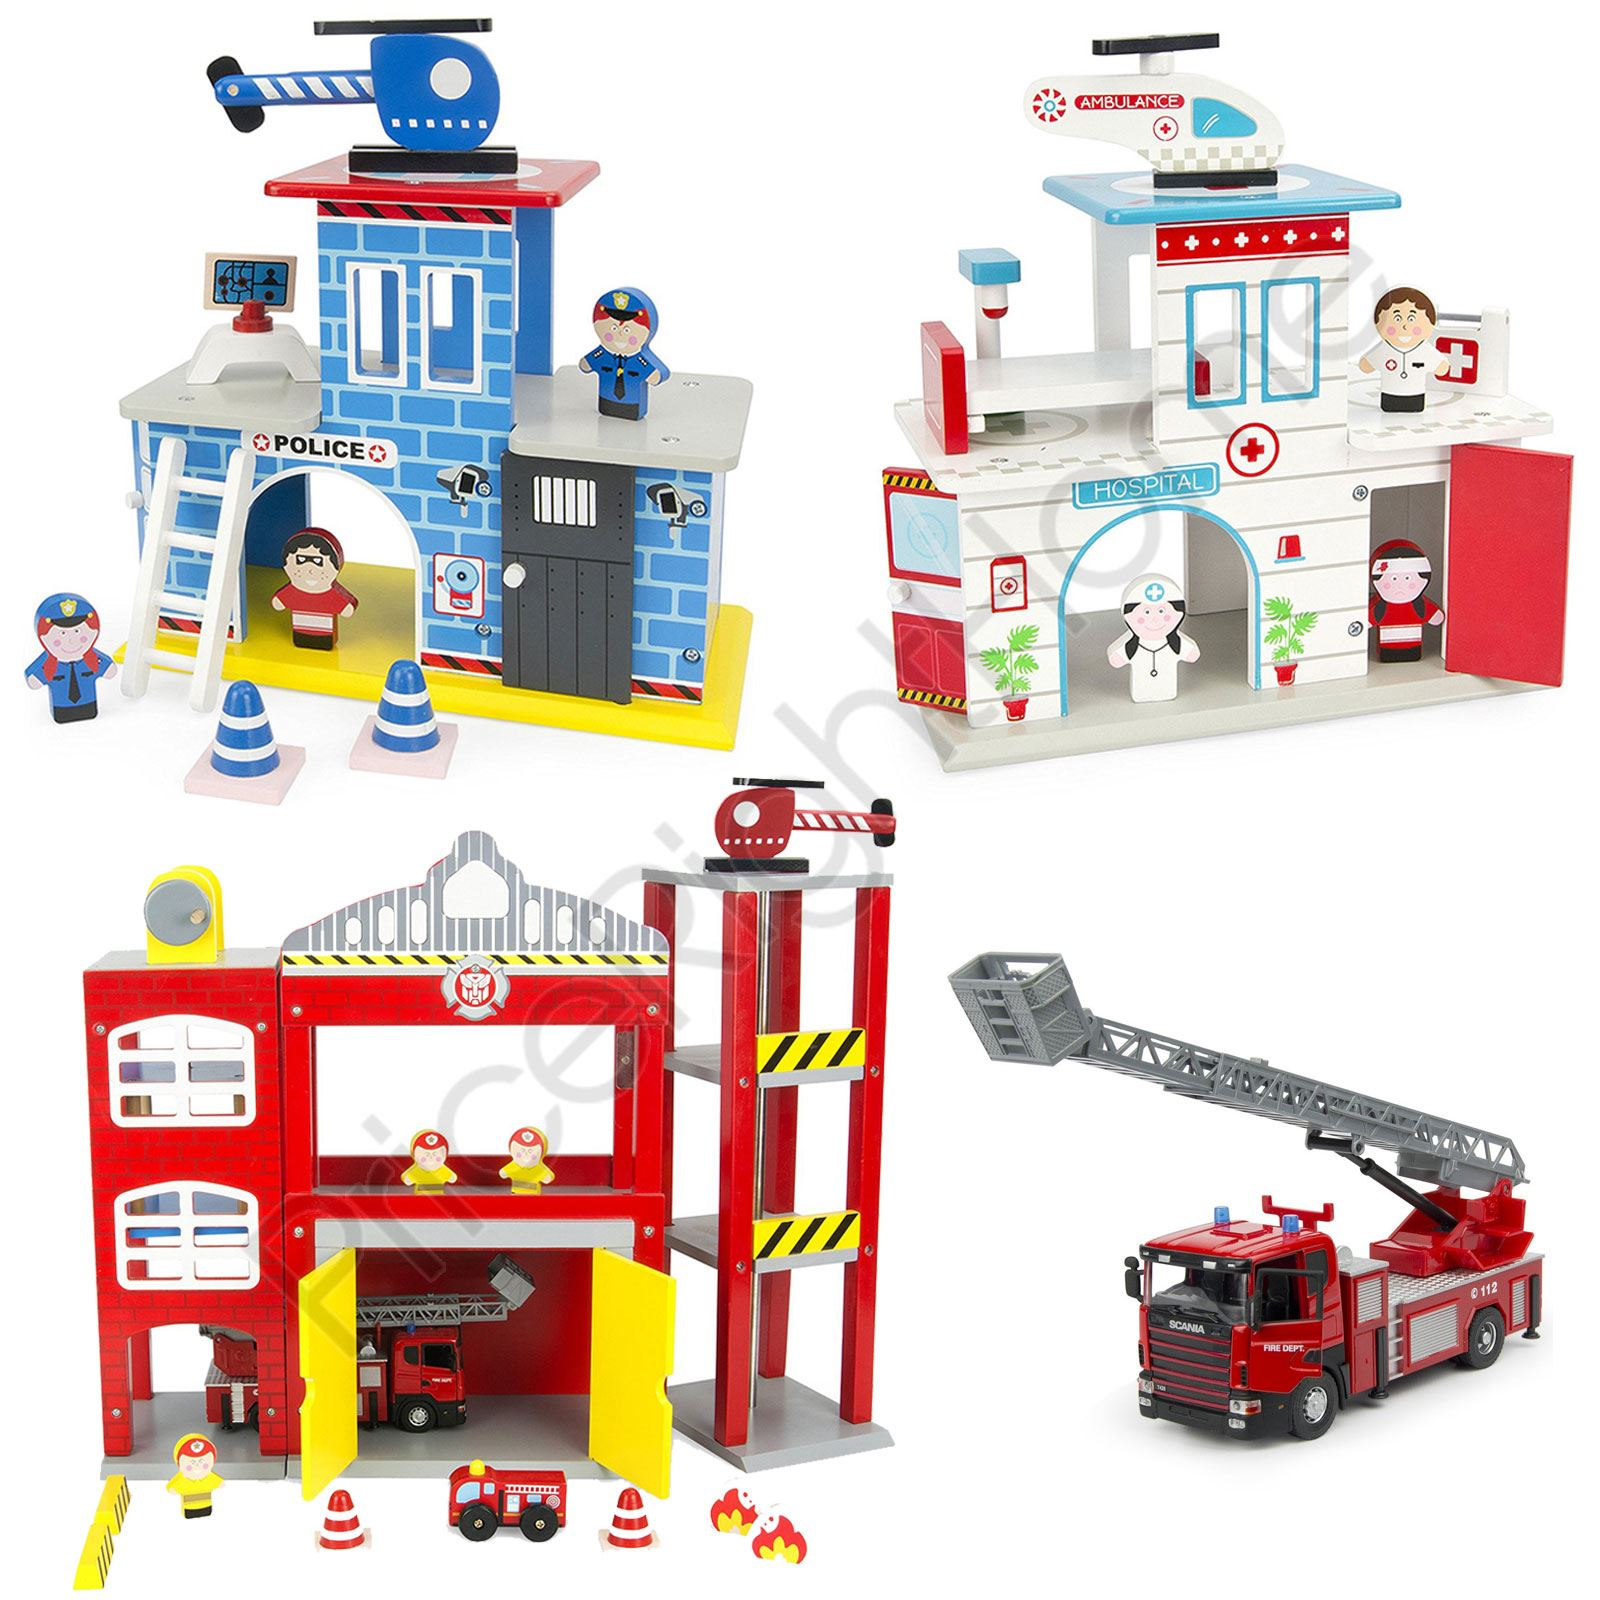 Details About Wooden Fire Station Police Station Hospital With Figures Kids Play Set Leomark